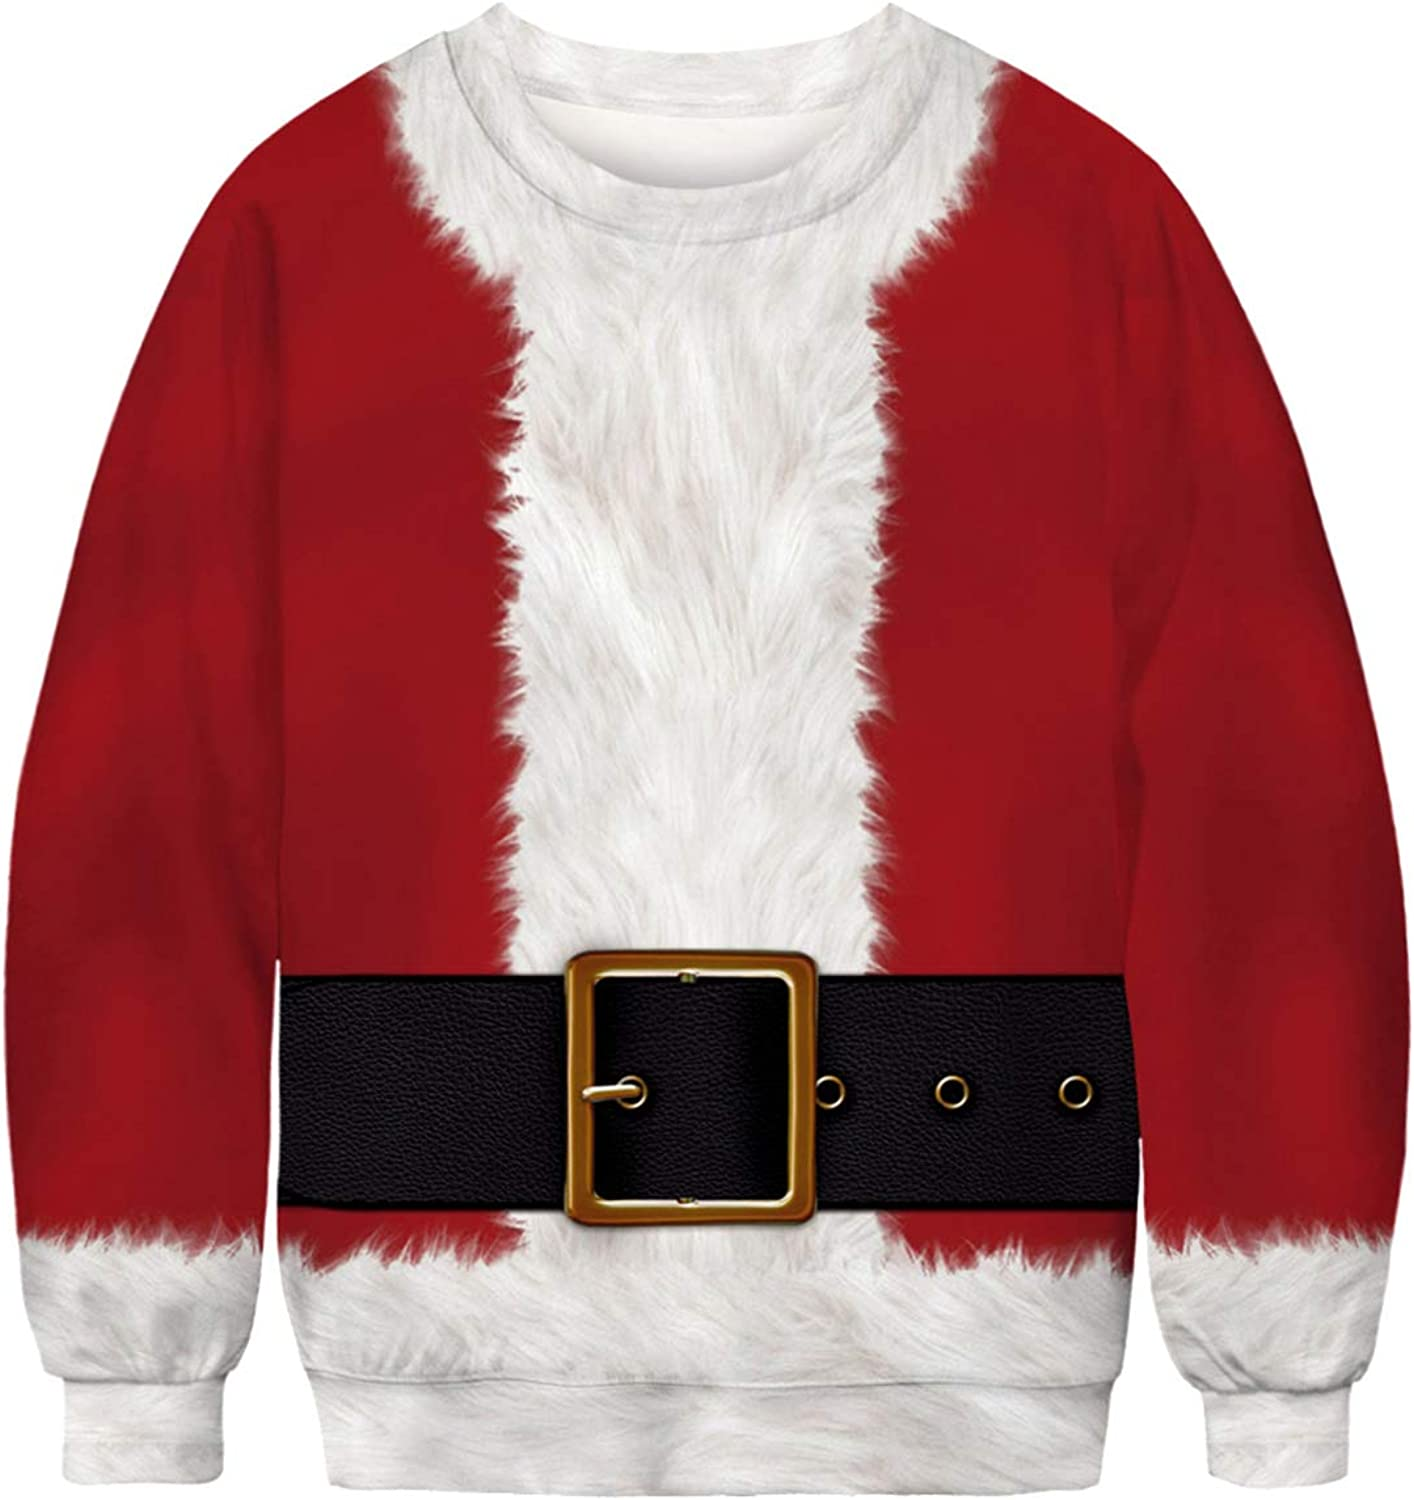 PIZOFF Unisex Ugly Christmas Sweatshirts 3D Printing Long Sleeve Xmas Pullovers